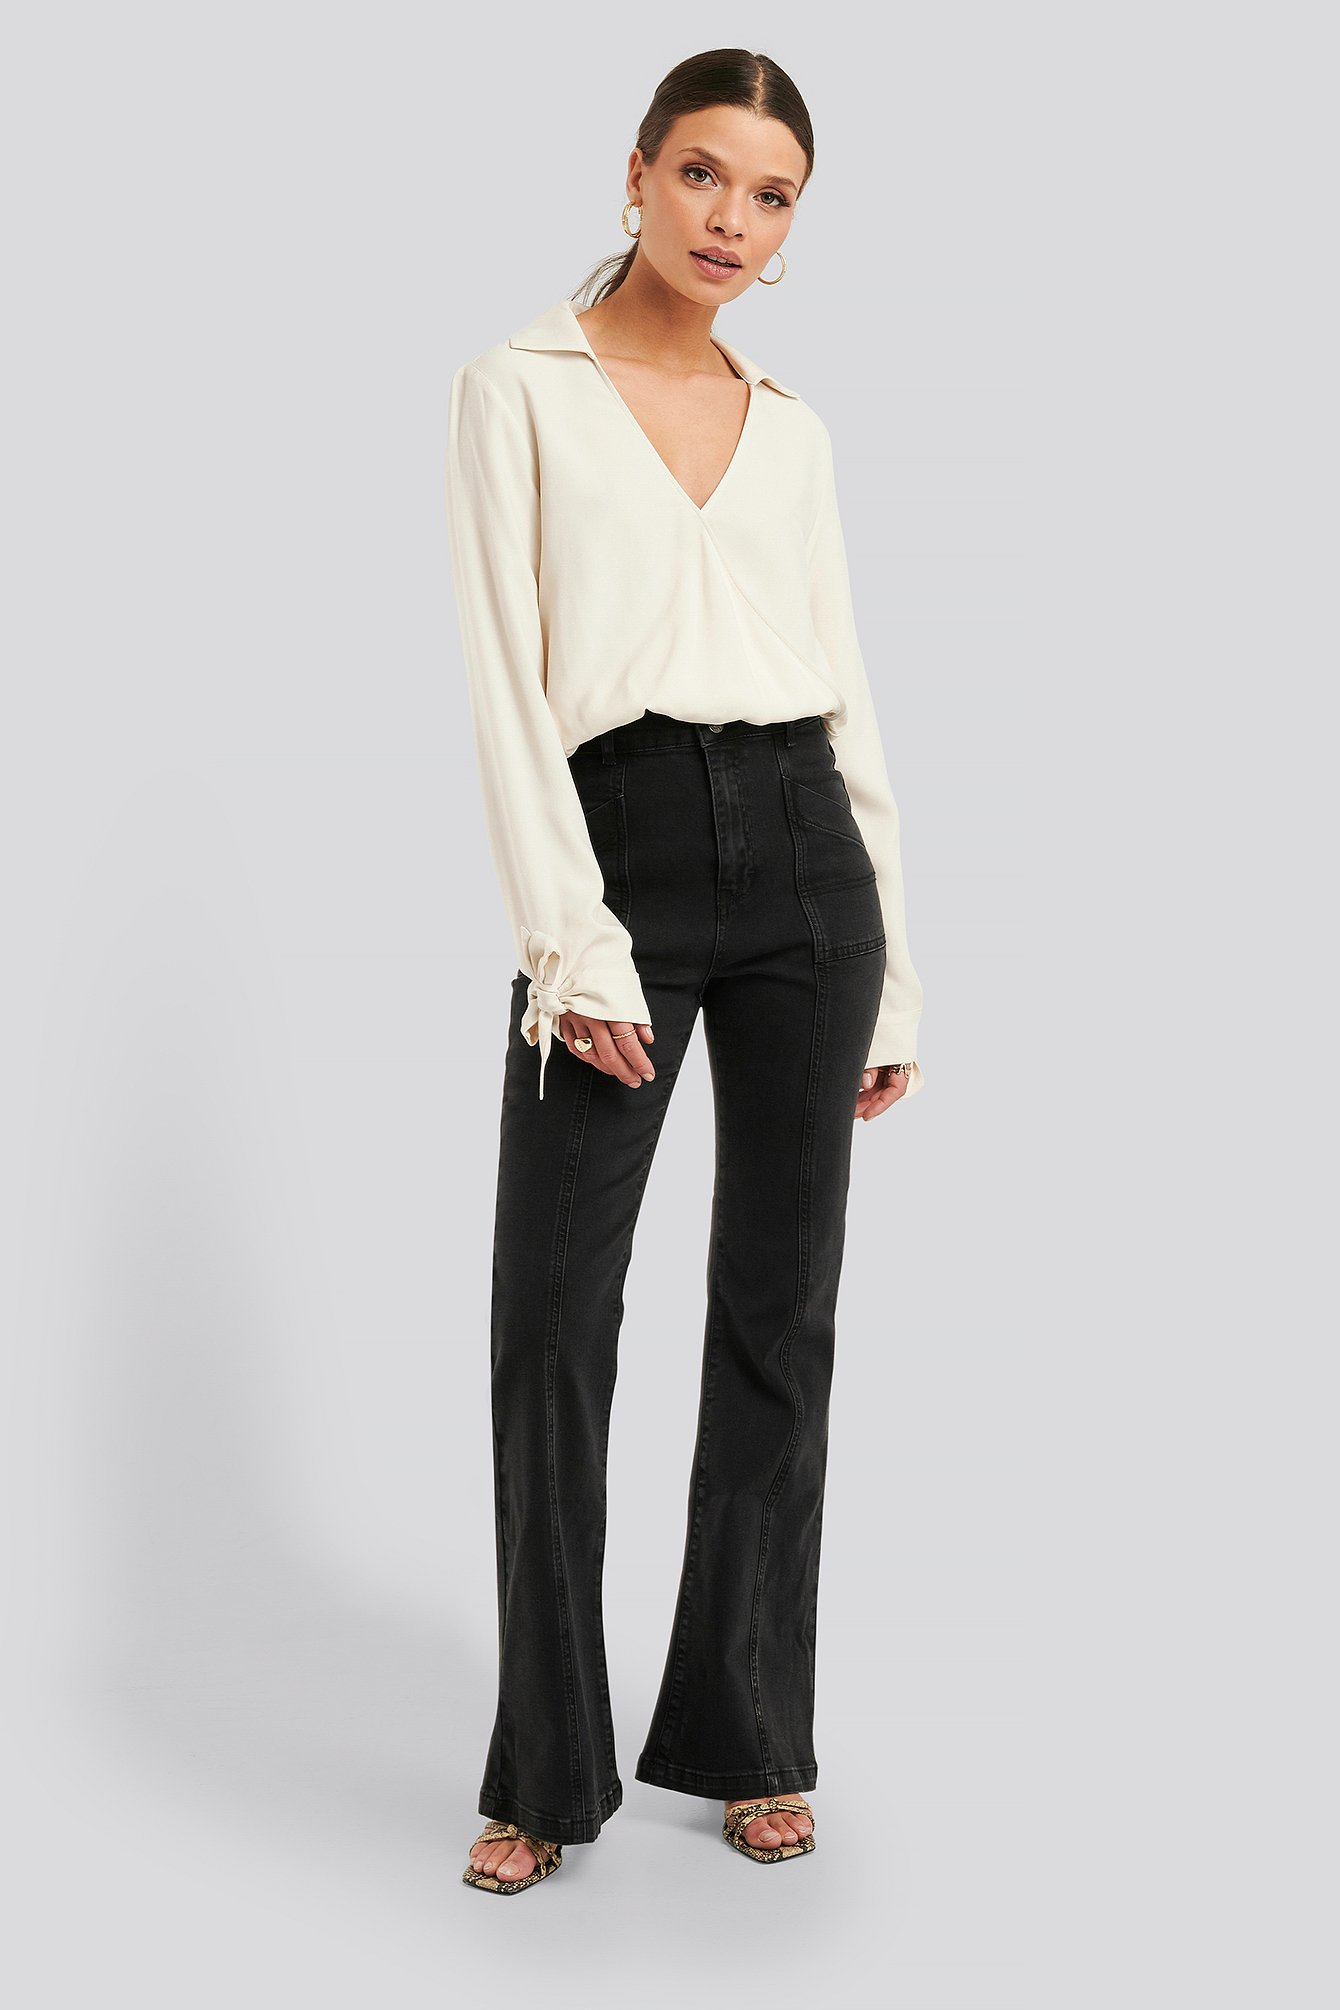 na-kd trend -  High Waist Front Seam Flare Jeans - Grey